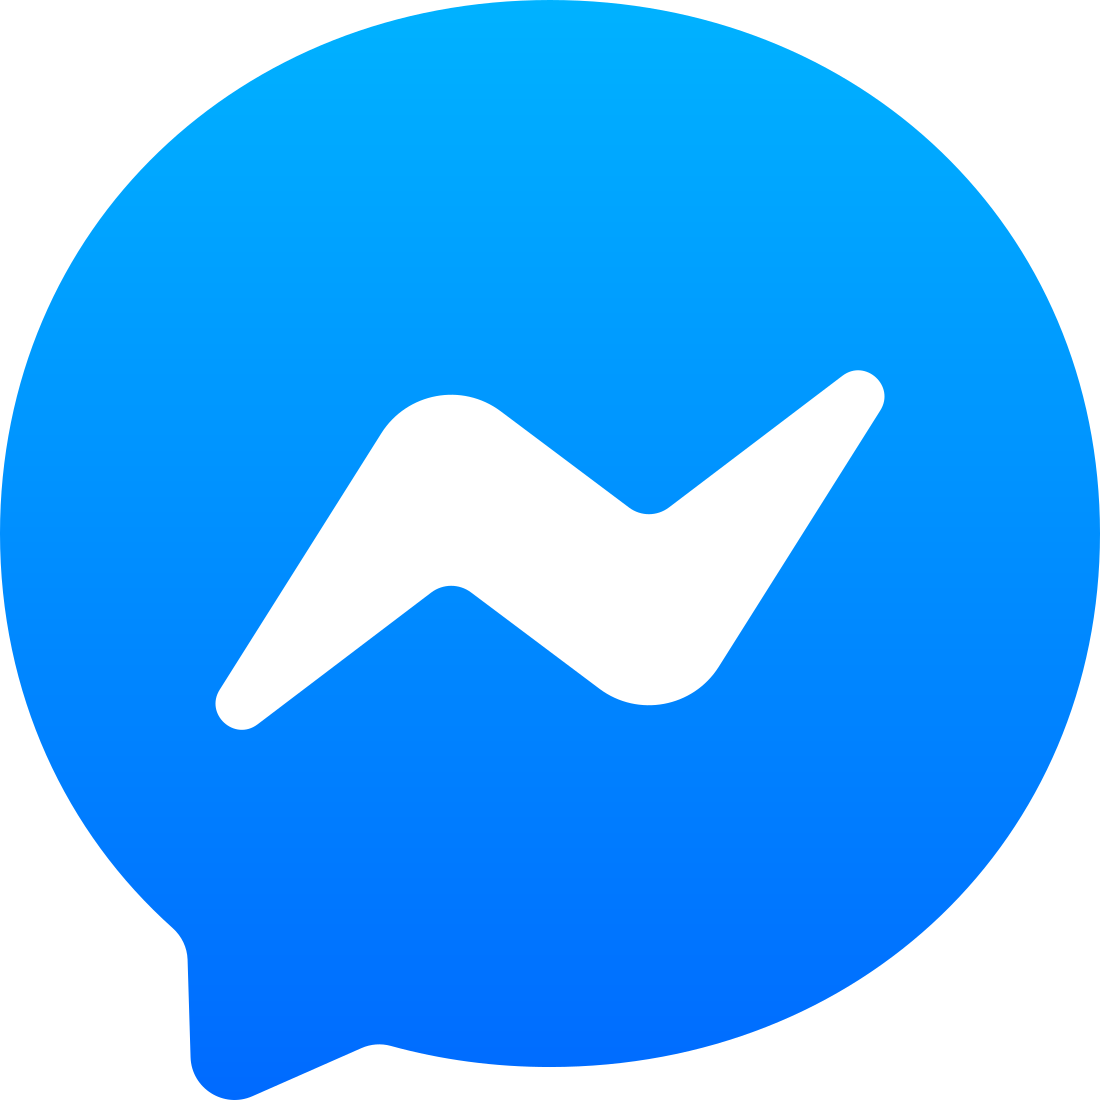 facebook messenger logo 02 - Facebook Messenger Logo